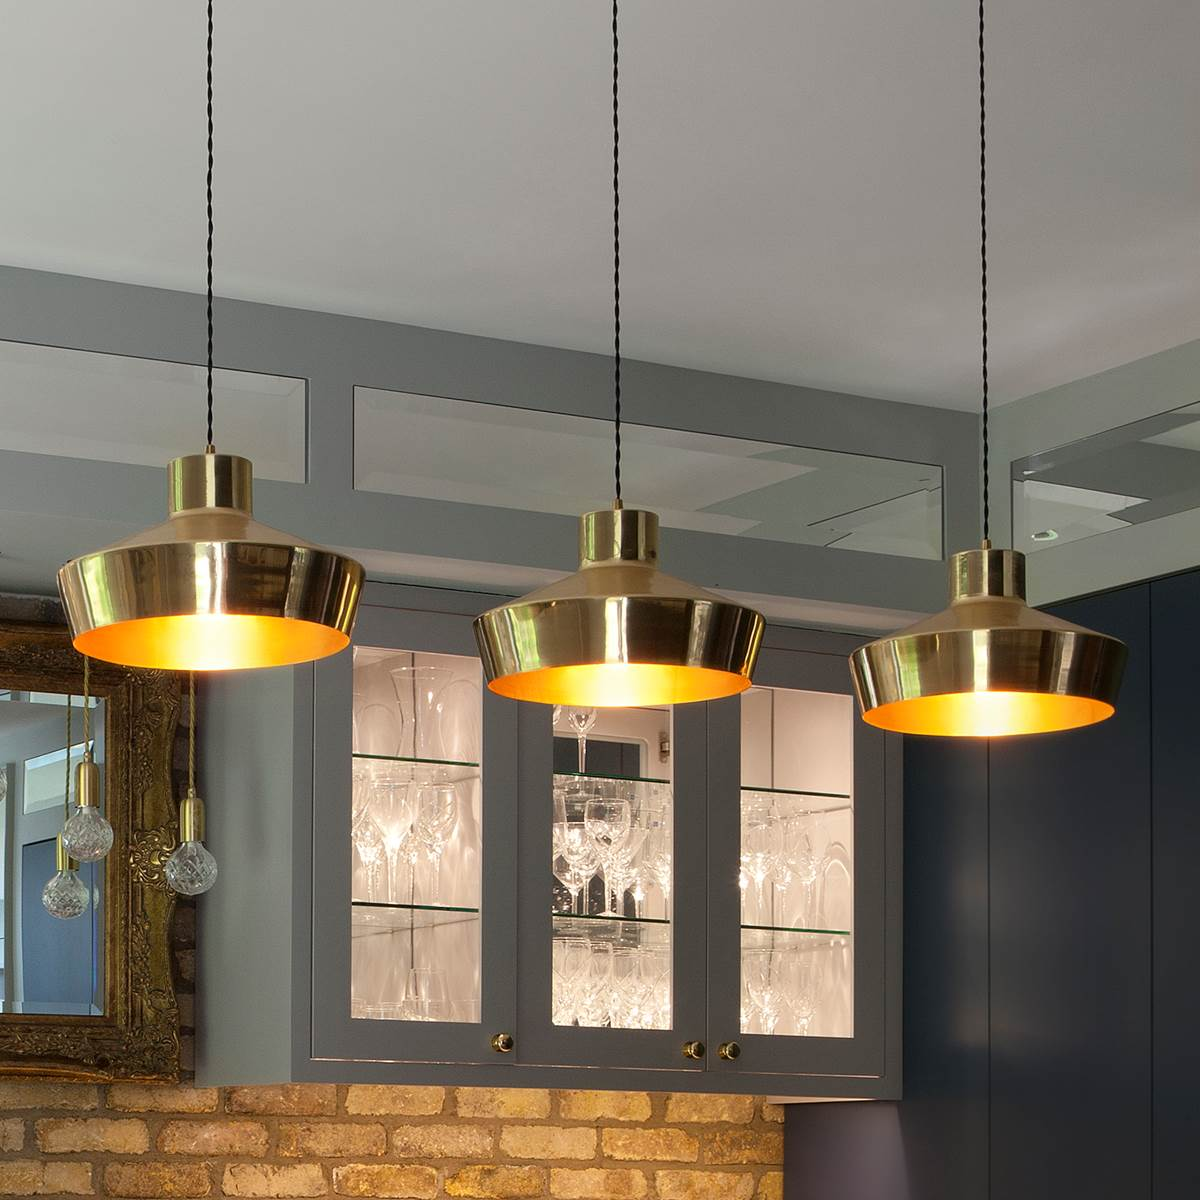 Splendor Brass Pendant Light Modernclassic